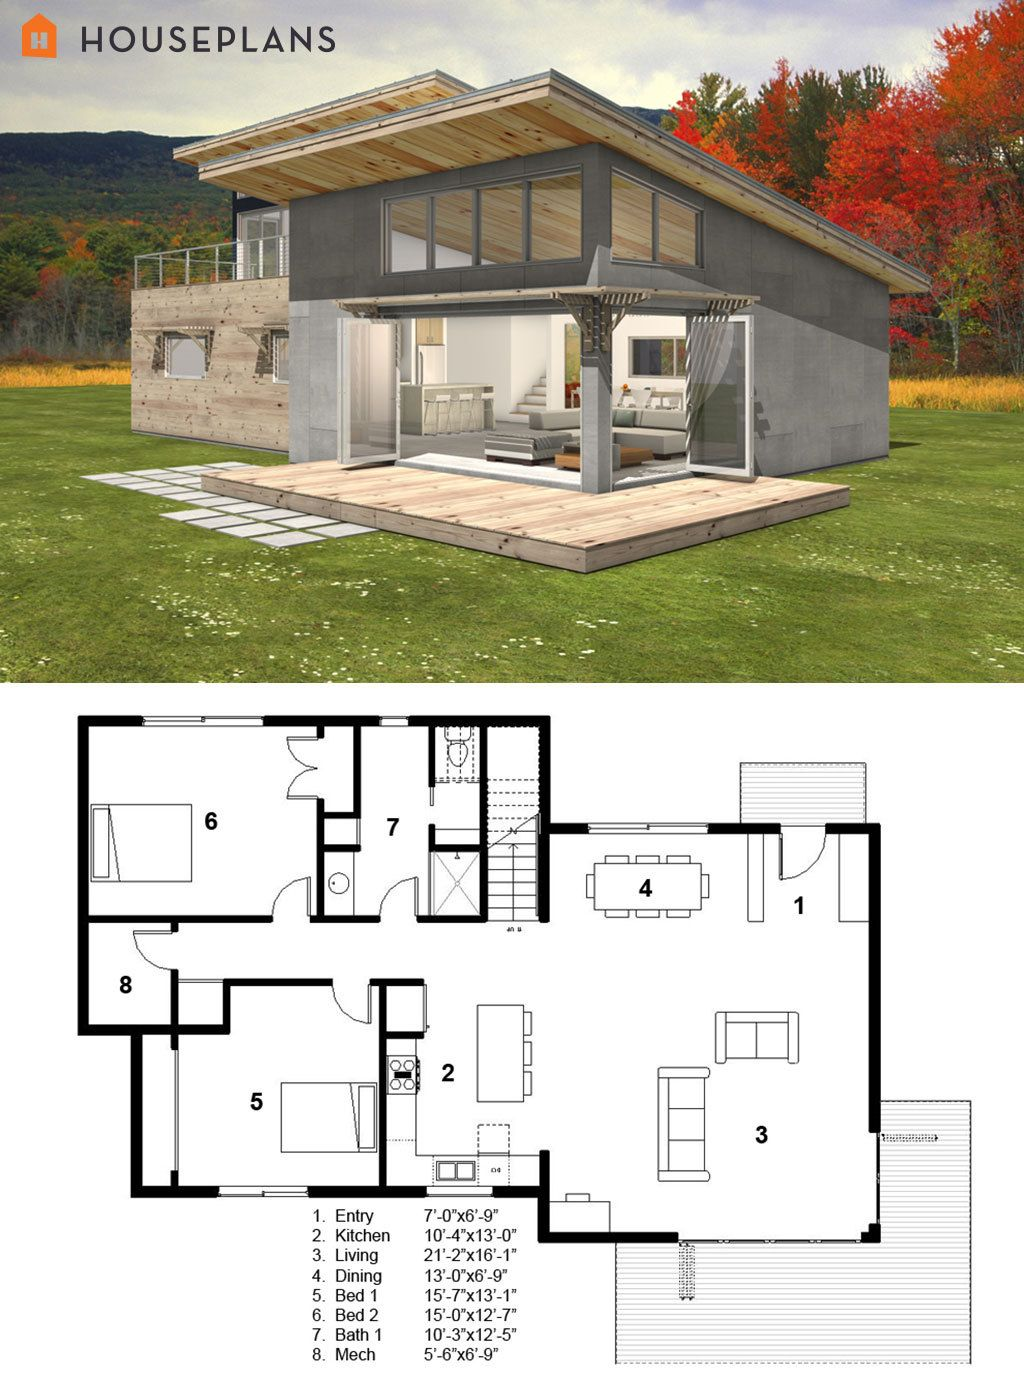 Small modern cabin house plan by freegreen energy Floor plan of a modern house